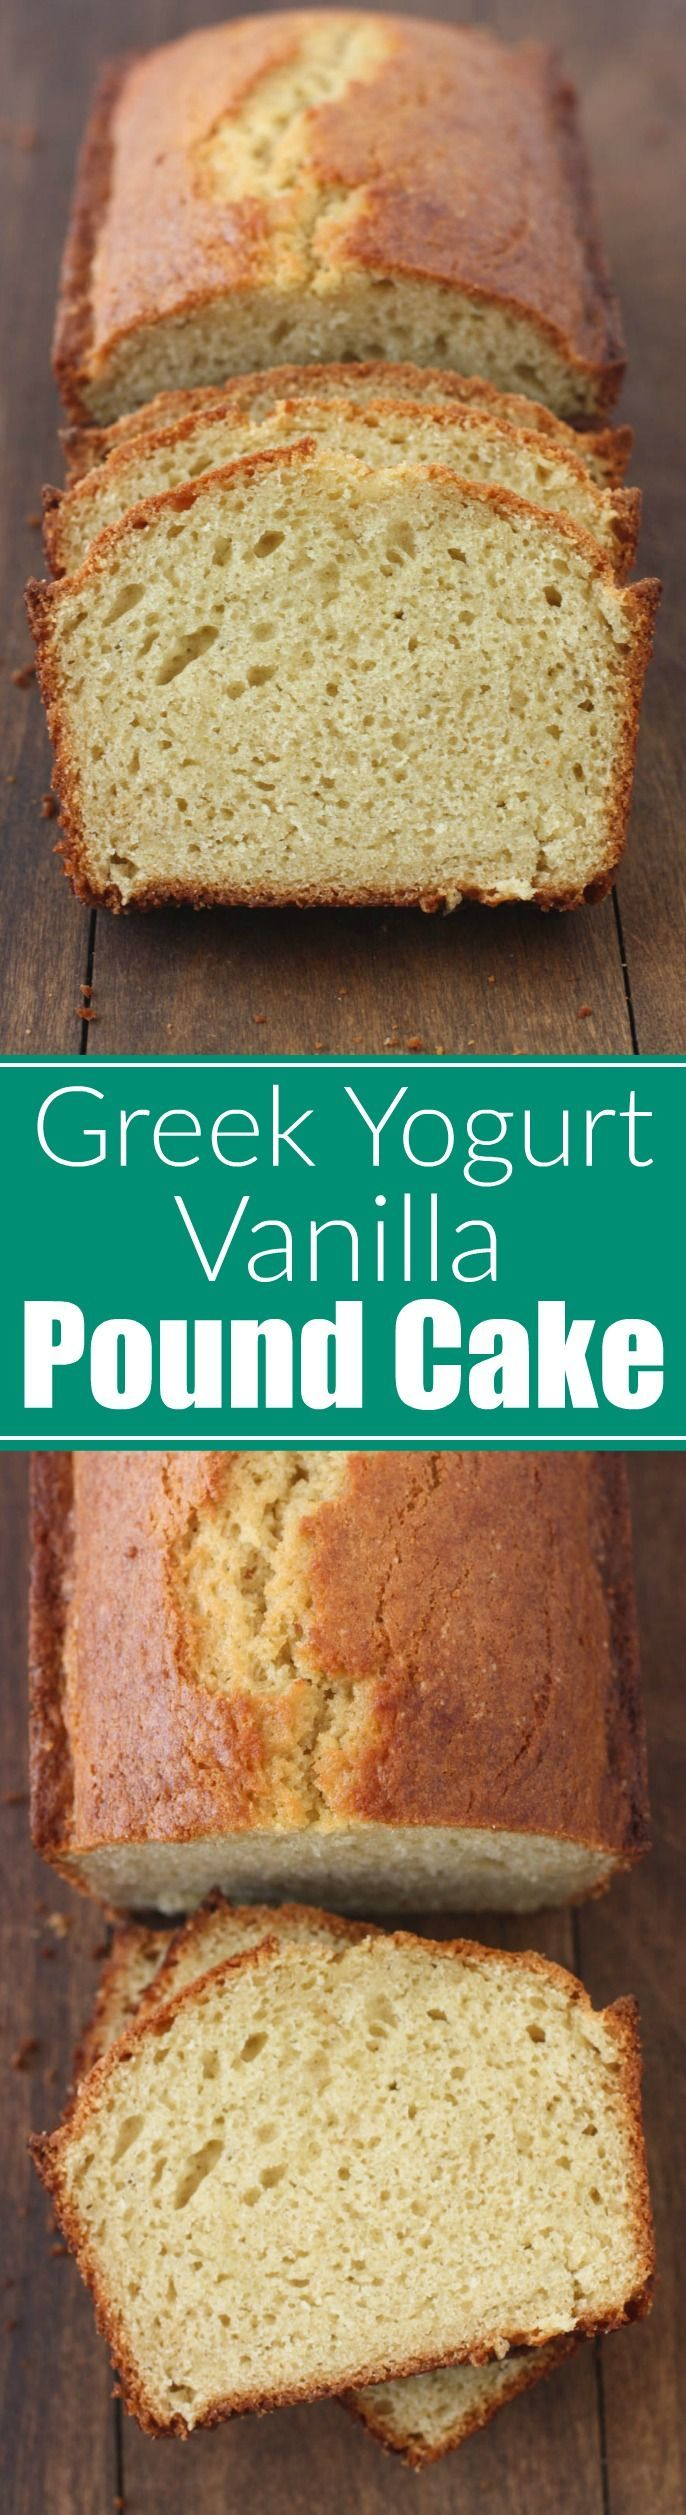 Greek Yogurt Vanilla Pound Cake - Tastes Better From Scratch